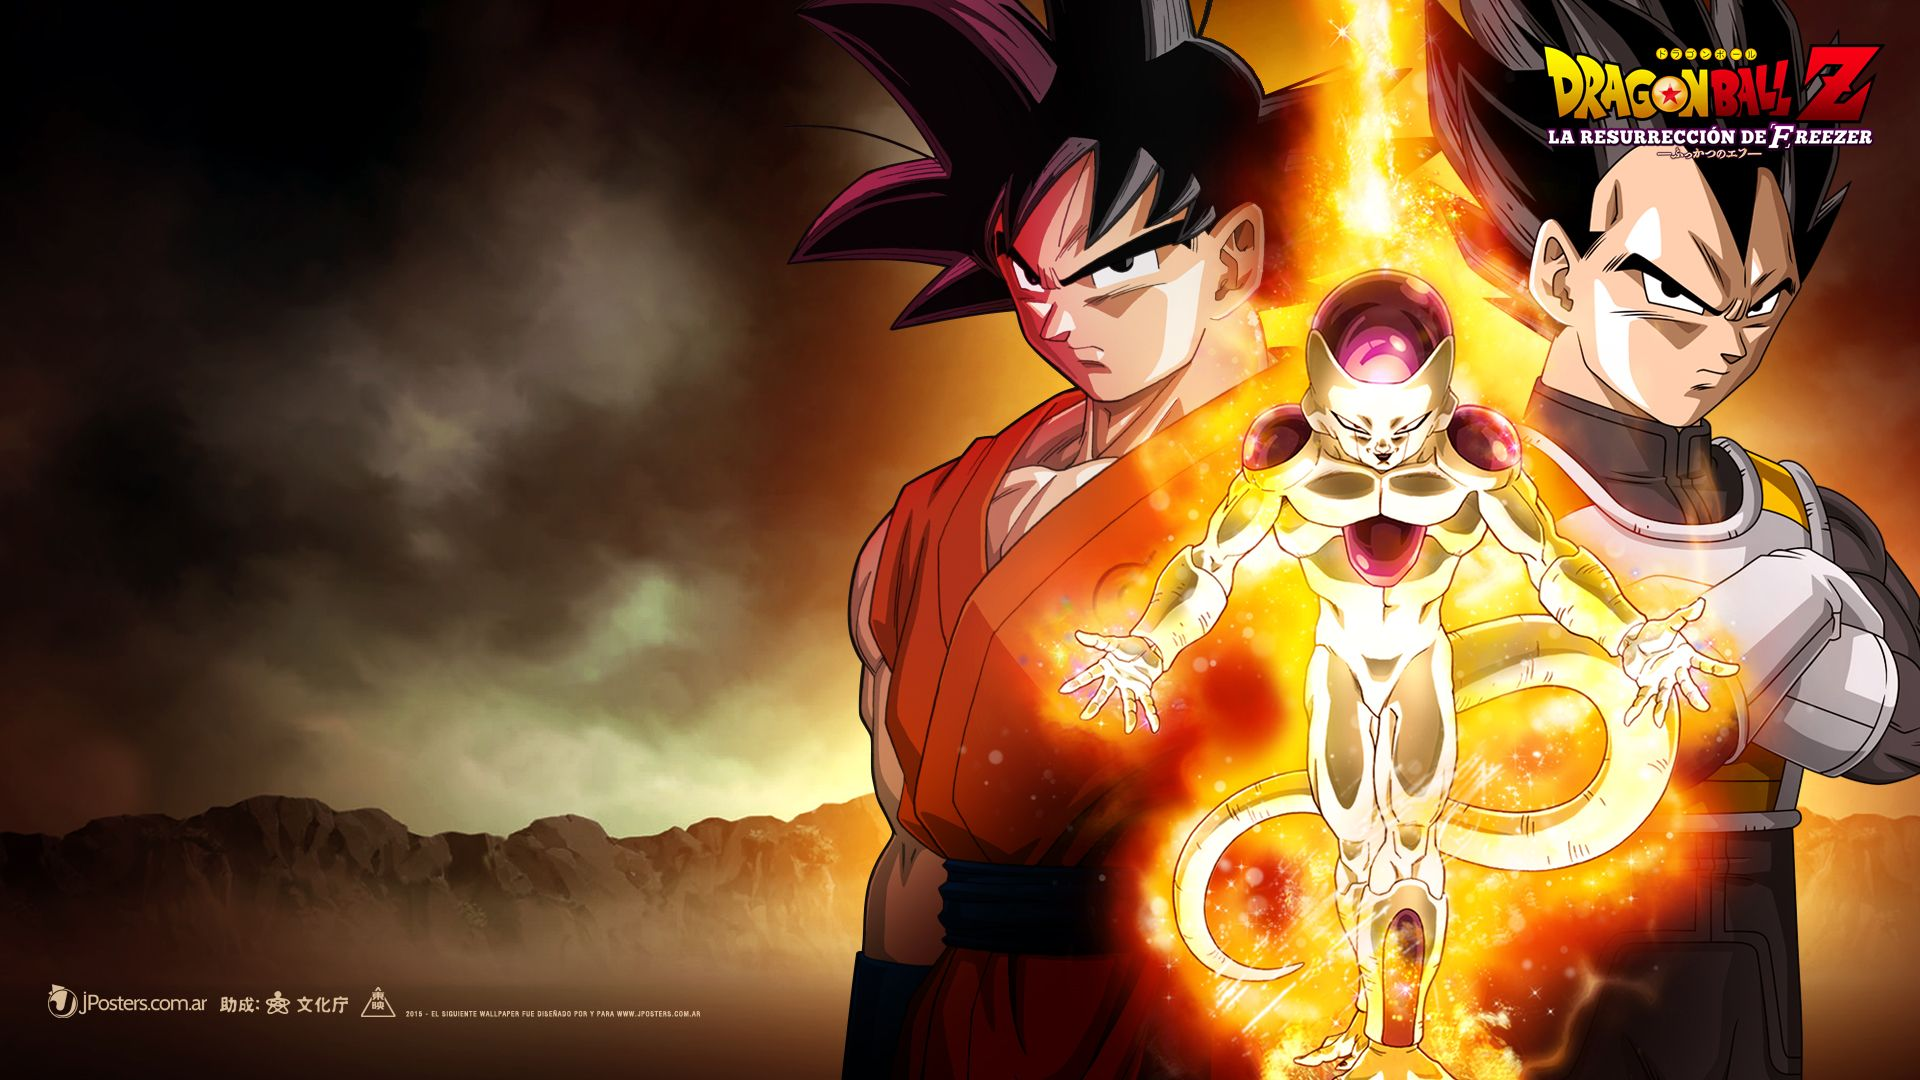 4k Dragon Ball Z Wallpaper Wallpapersafari Wallpaper Dragon Ball Dragon